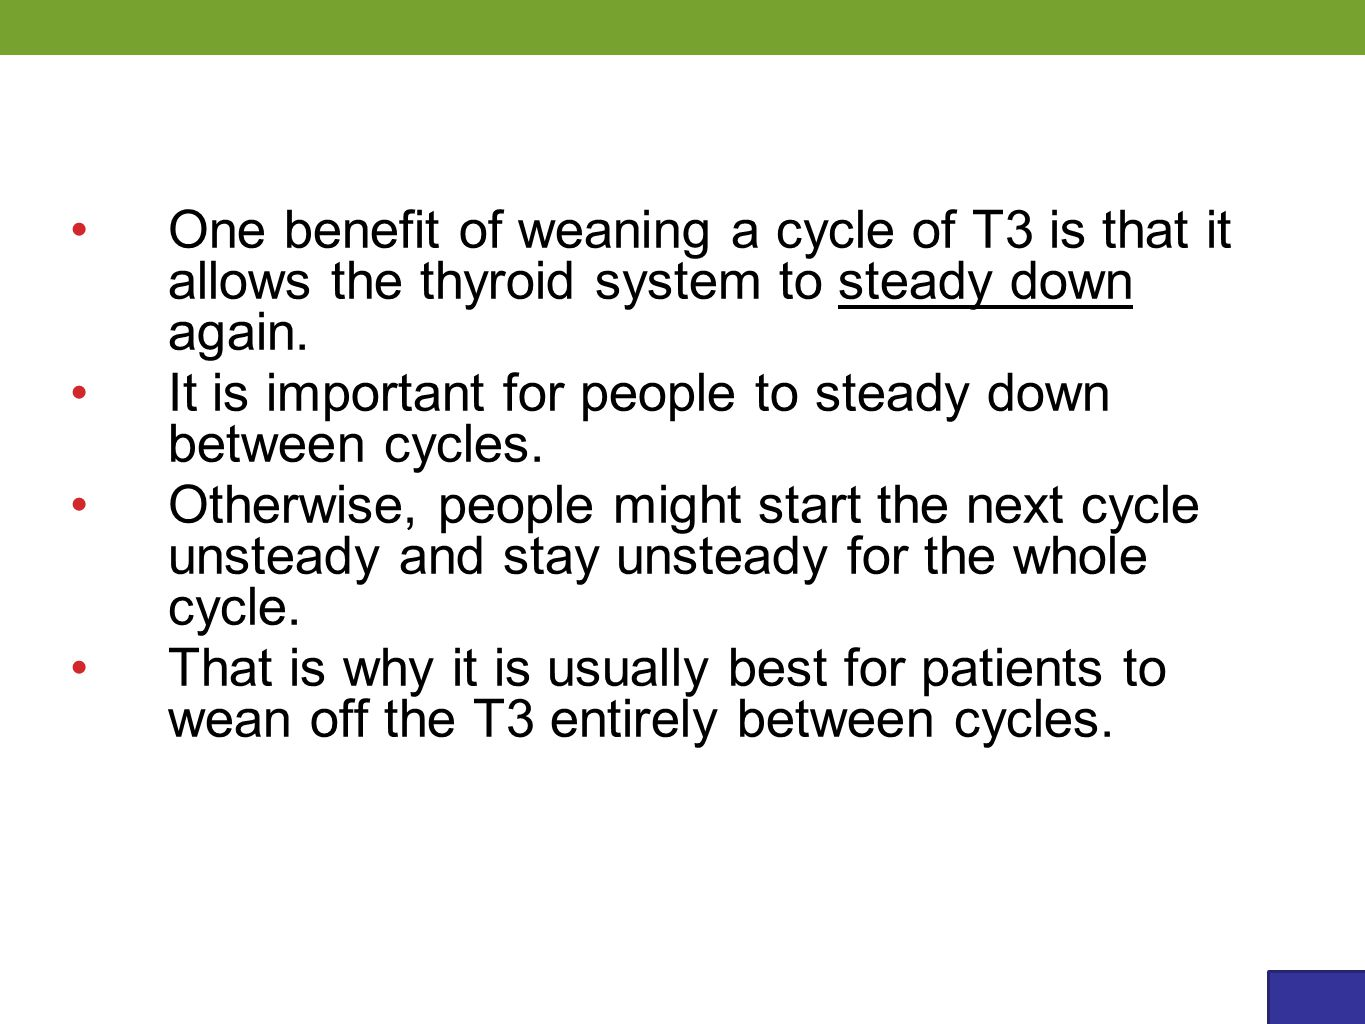 One benefit of weaning a cycle of T3 is that it allows the thyroid system to steady down again.